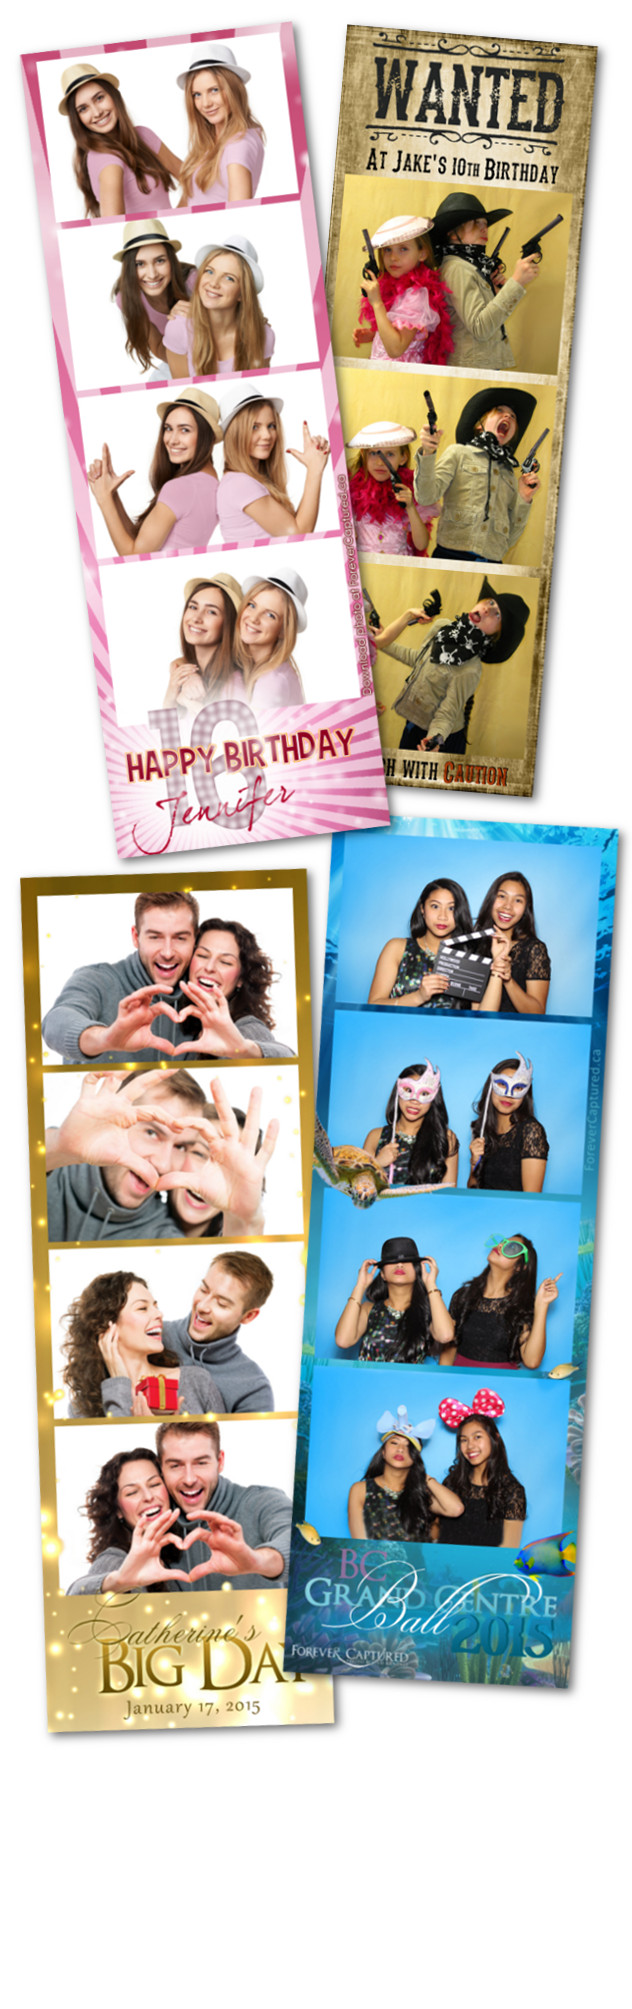 Photobooth rentals in Coquitlam, BC for weddings, events, and parties.